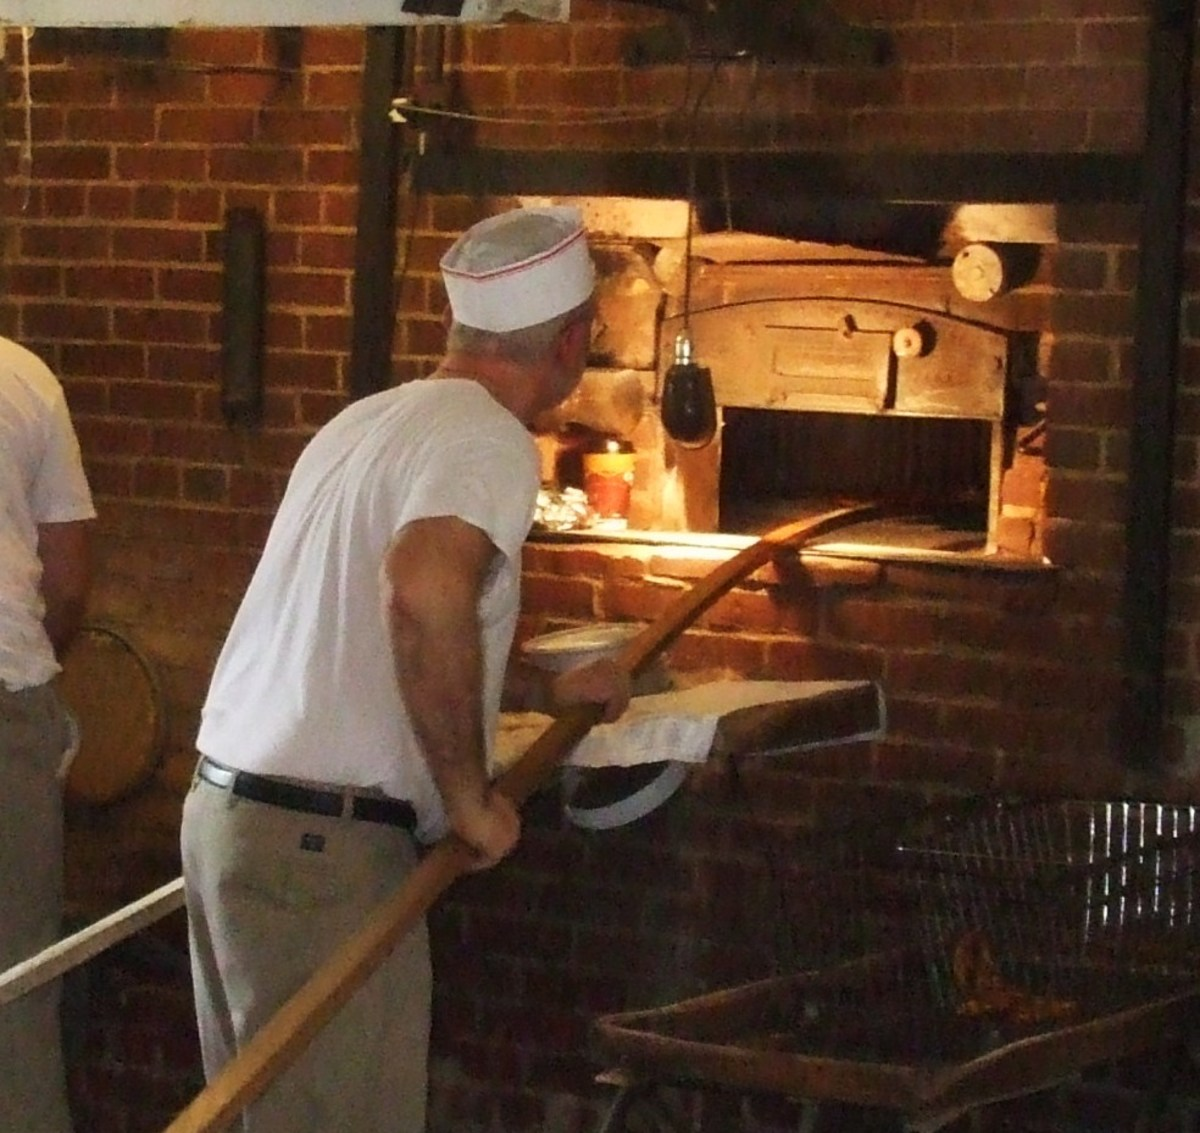 Old-fashioned techniques: Using a peel to put pretzels into the brick oven at Shuey's Pretzels, Lebanon, PA.